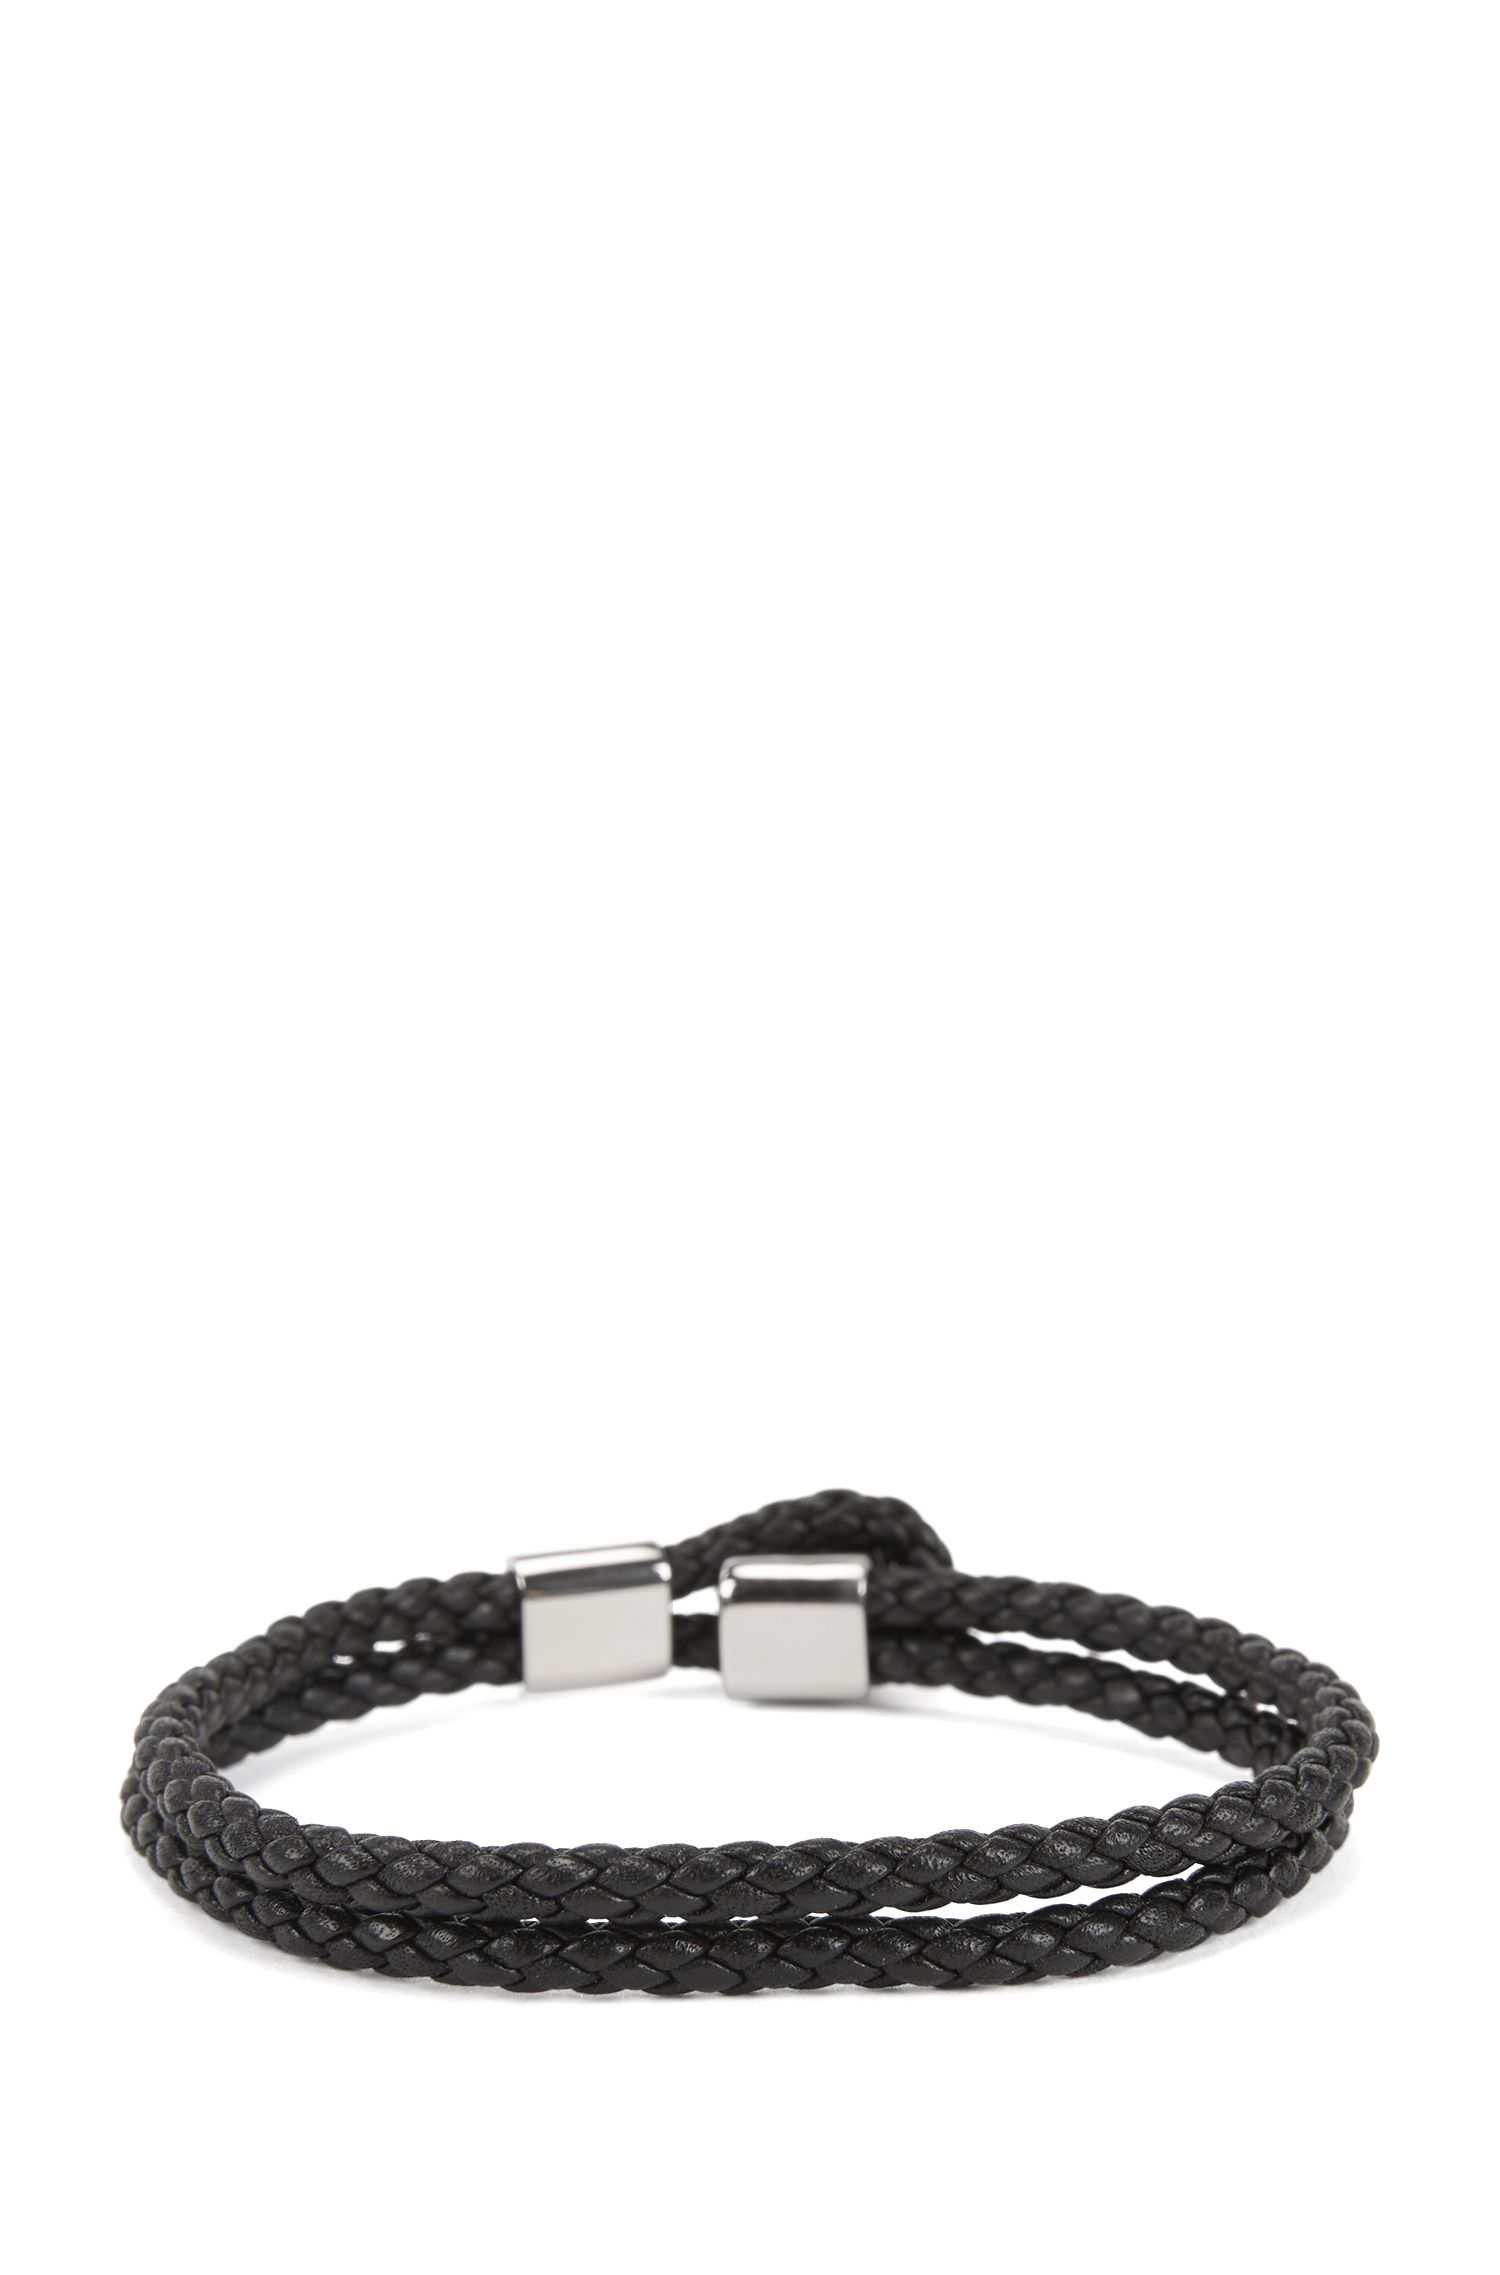 Italian-made double-wrap braided bracelet in calf leather